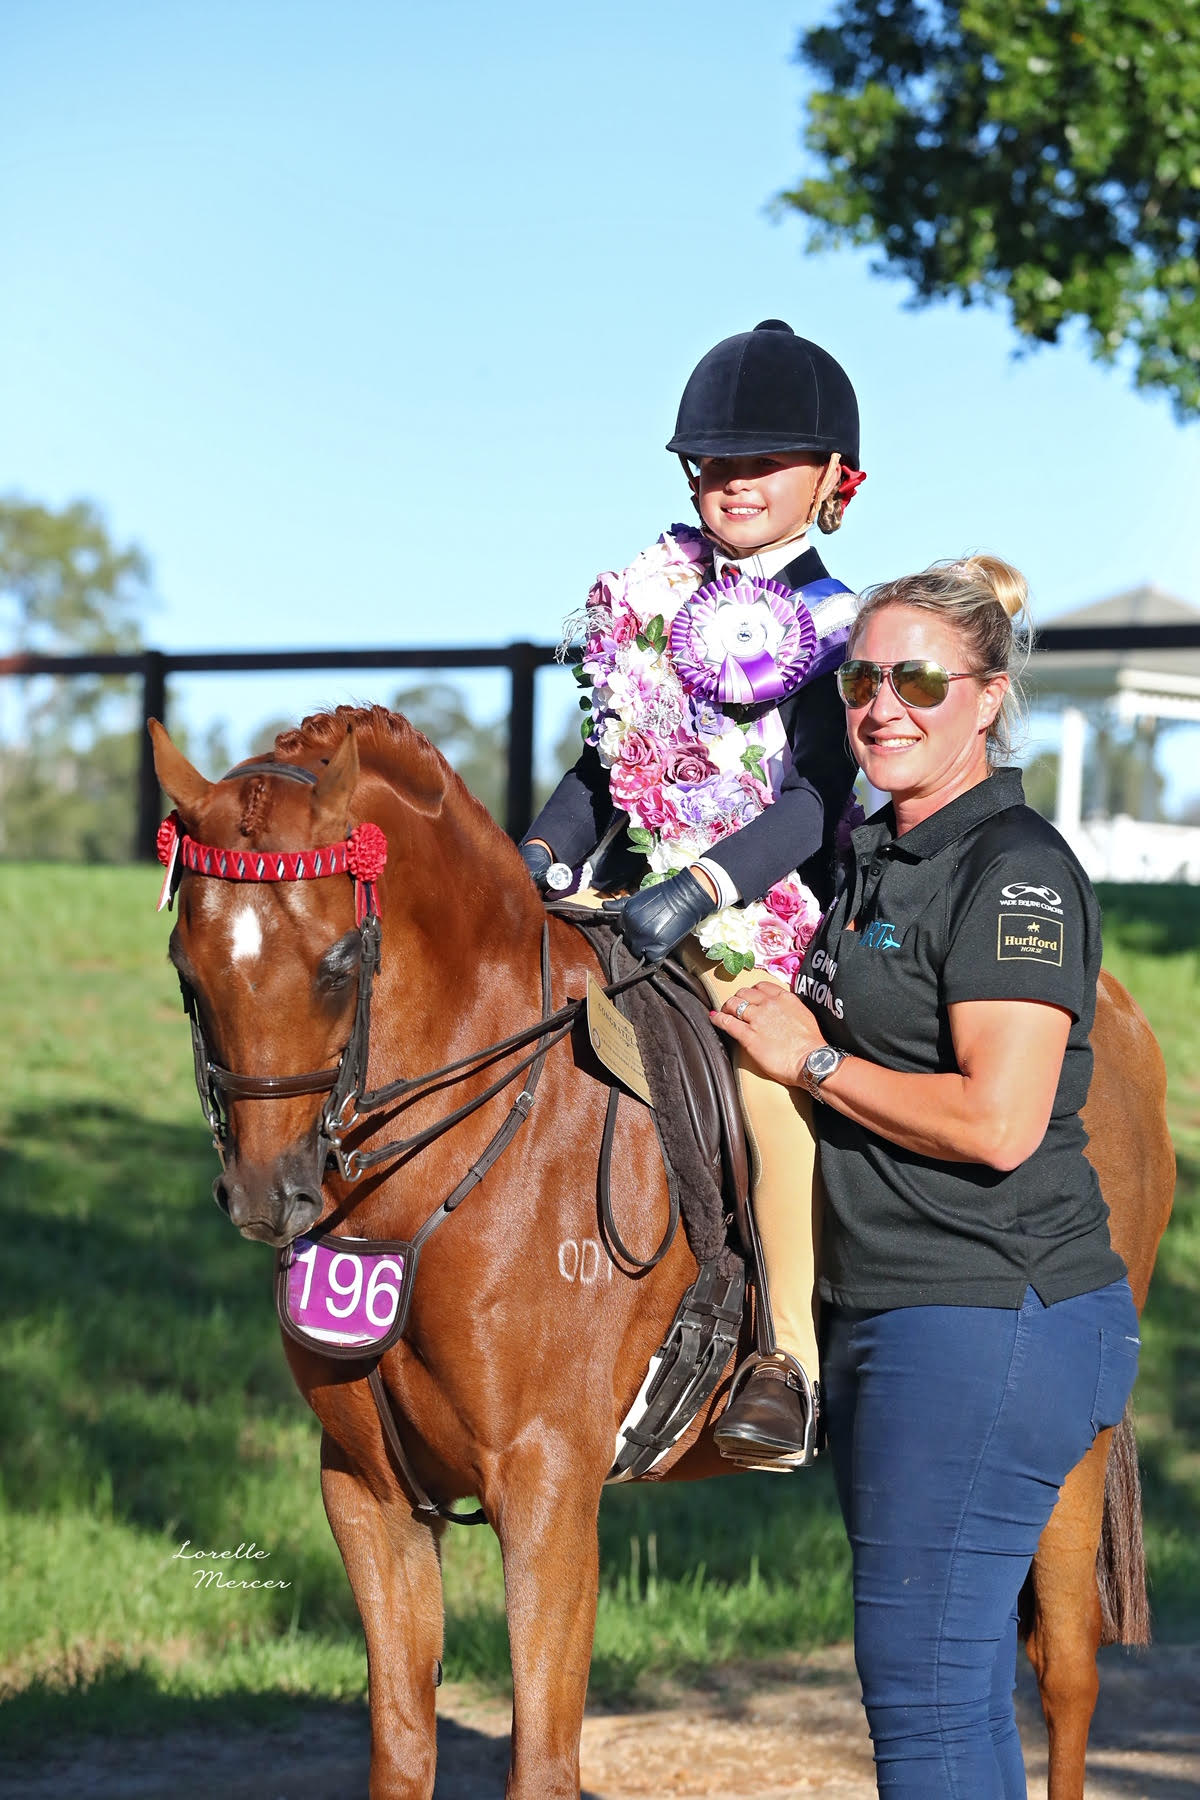 Charli and Coach Nicolette Butcher. Photo Credit Lorelle Mercer Photography